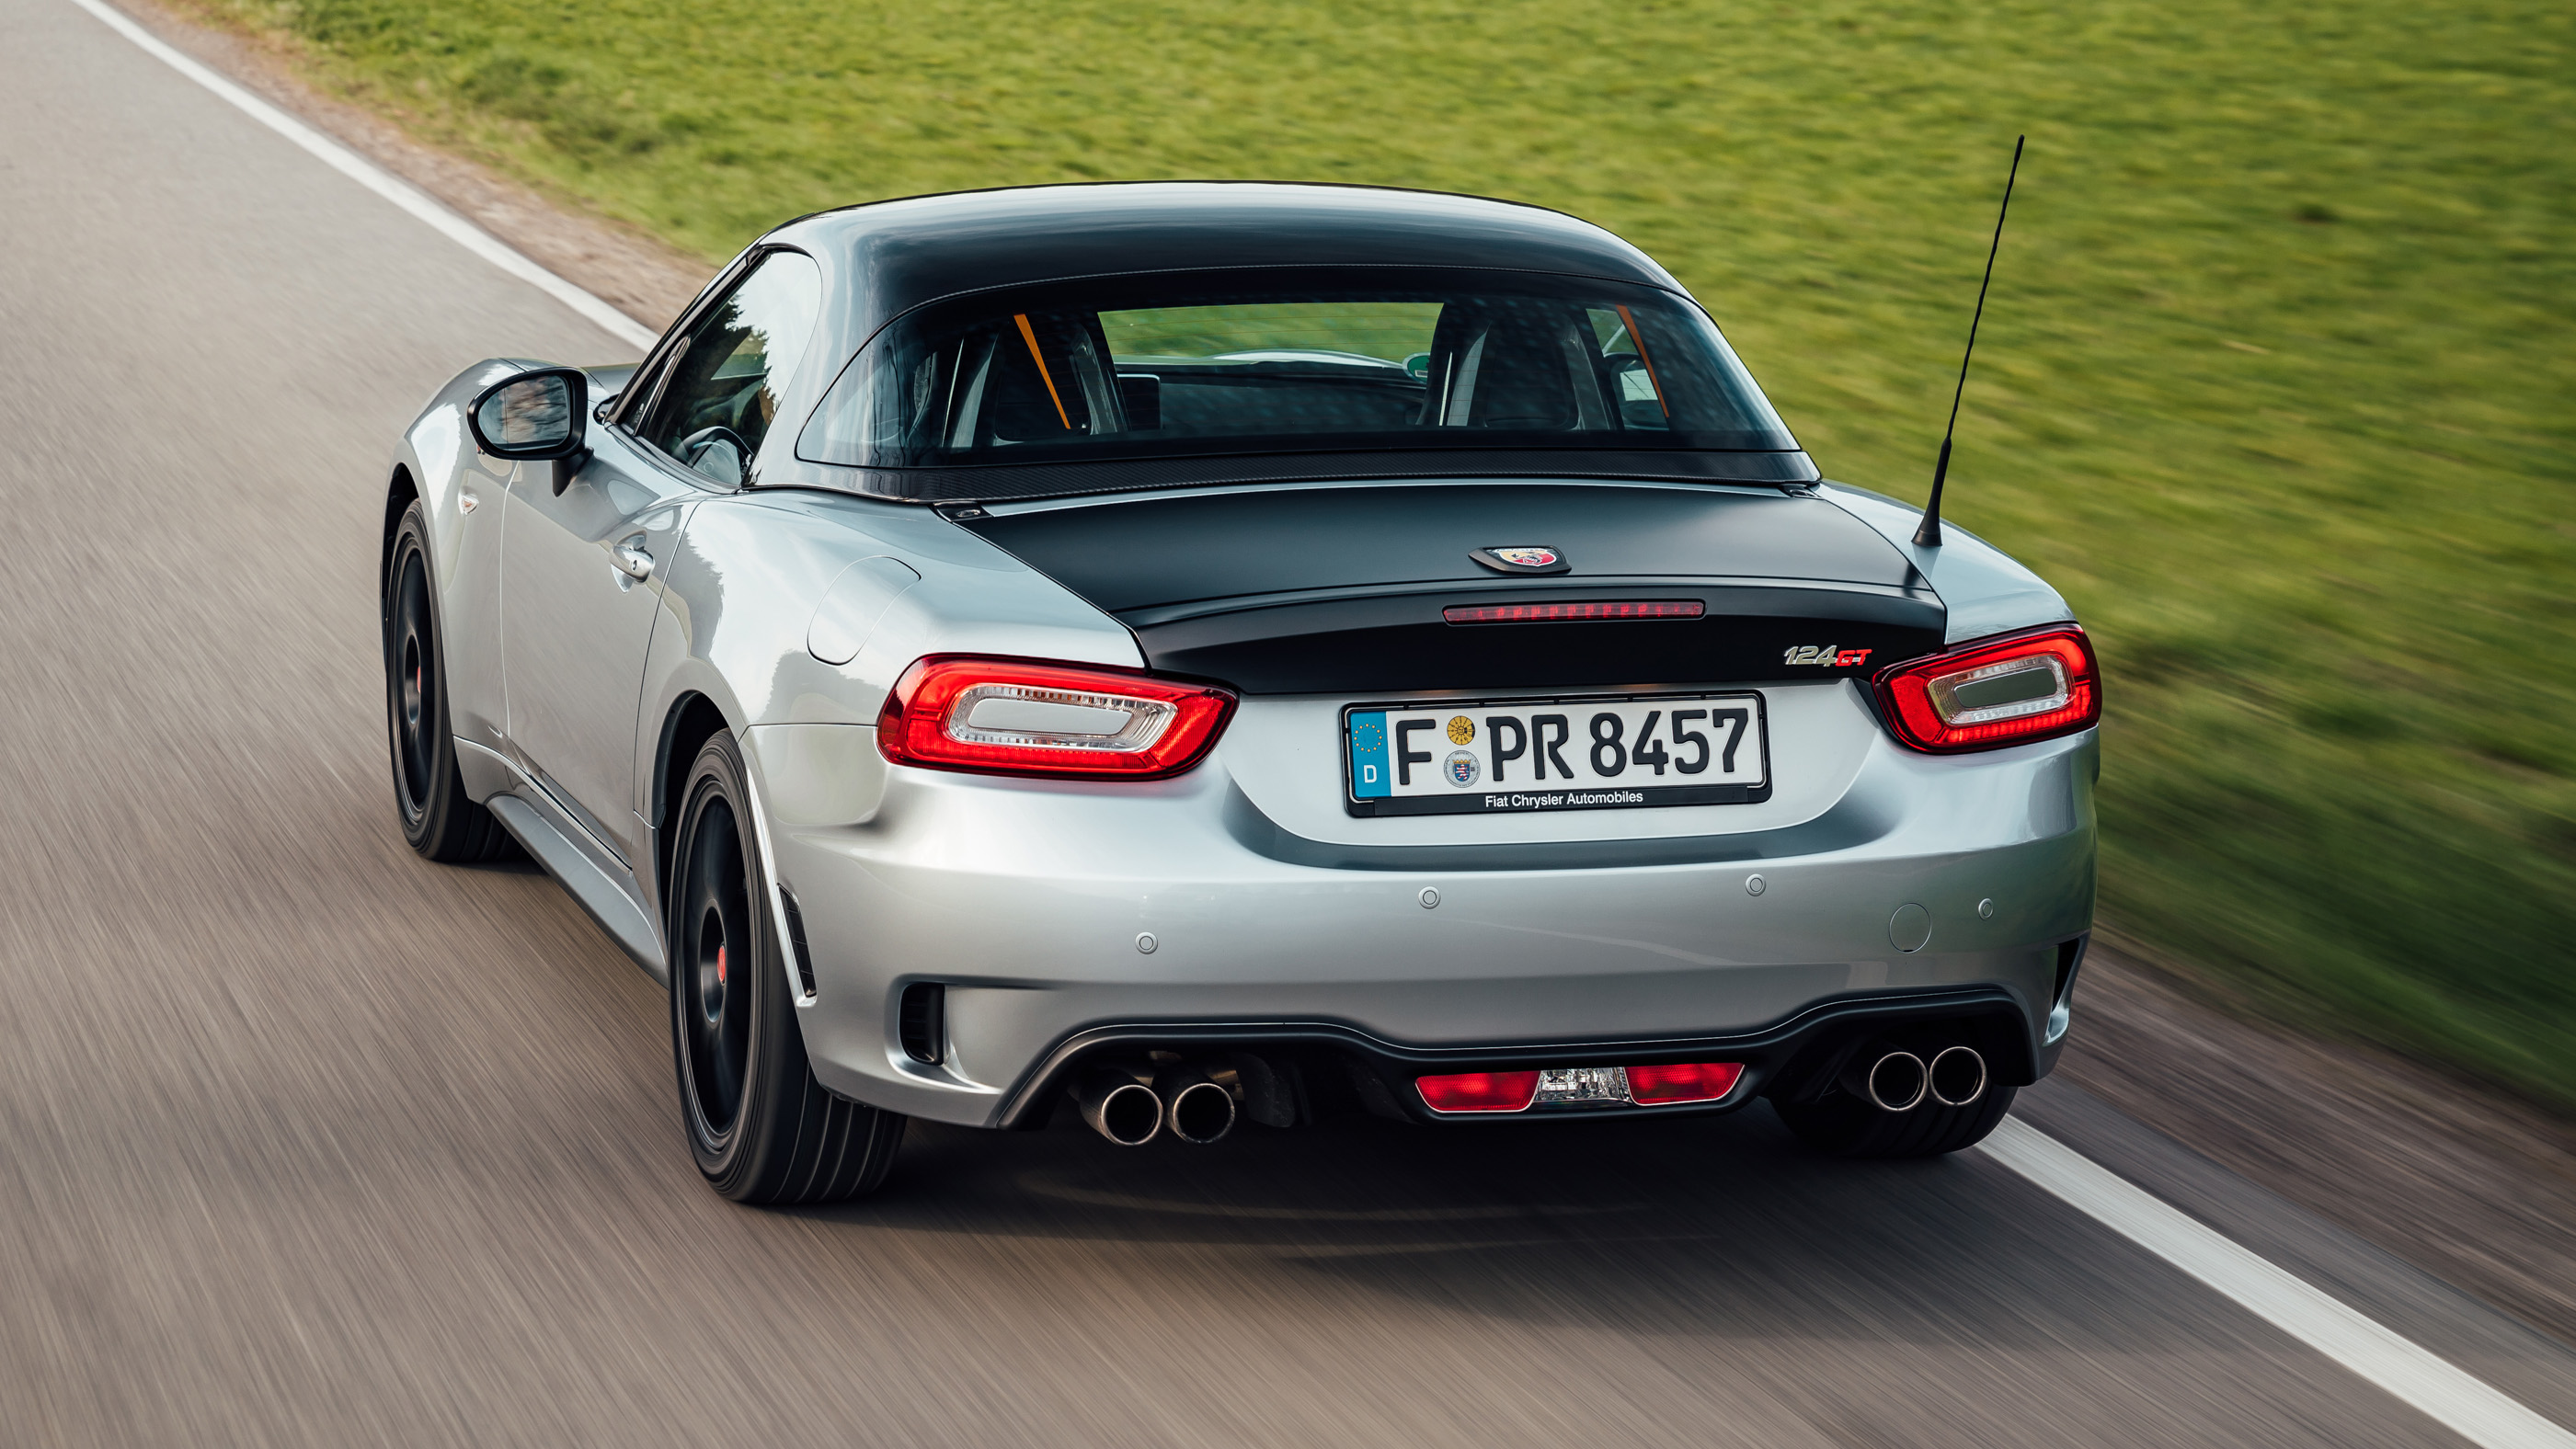 2018 Abarth 124 Spider Review | Top Gear